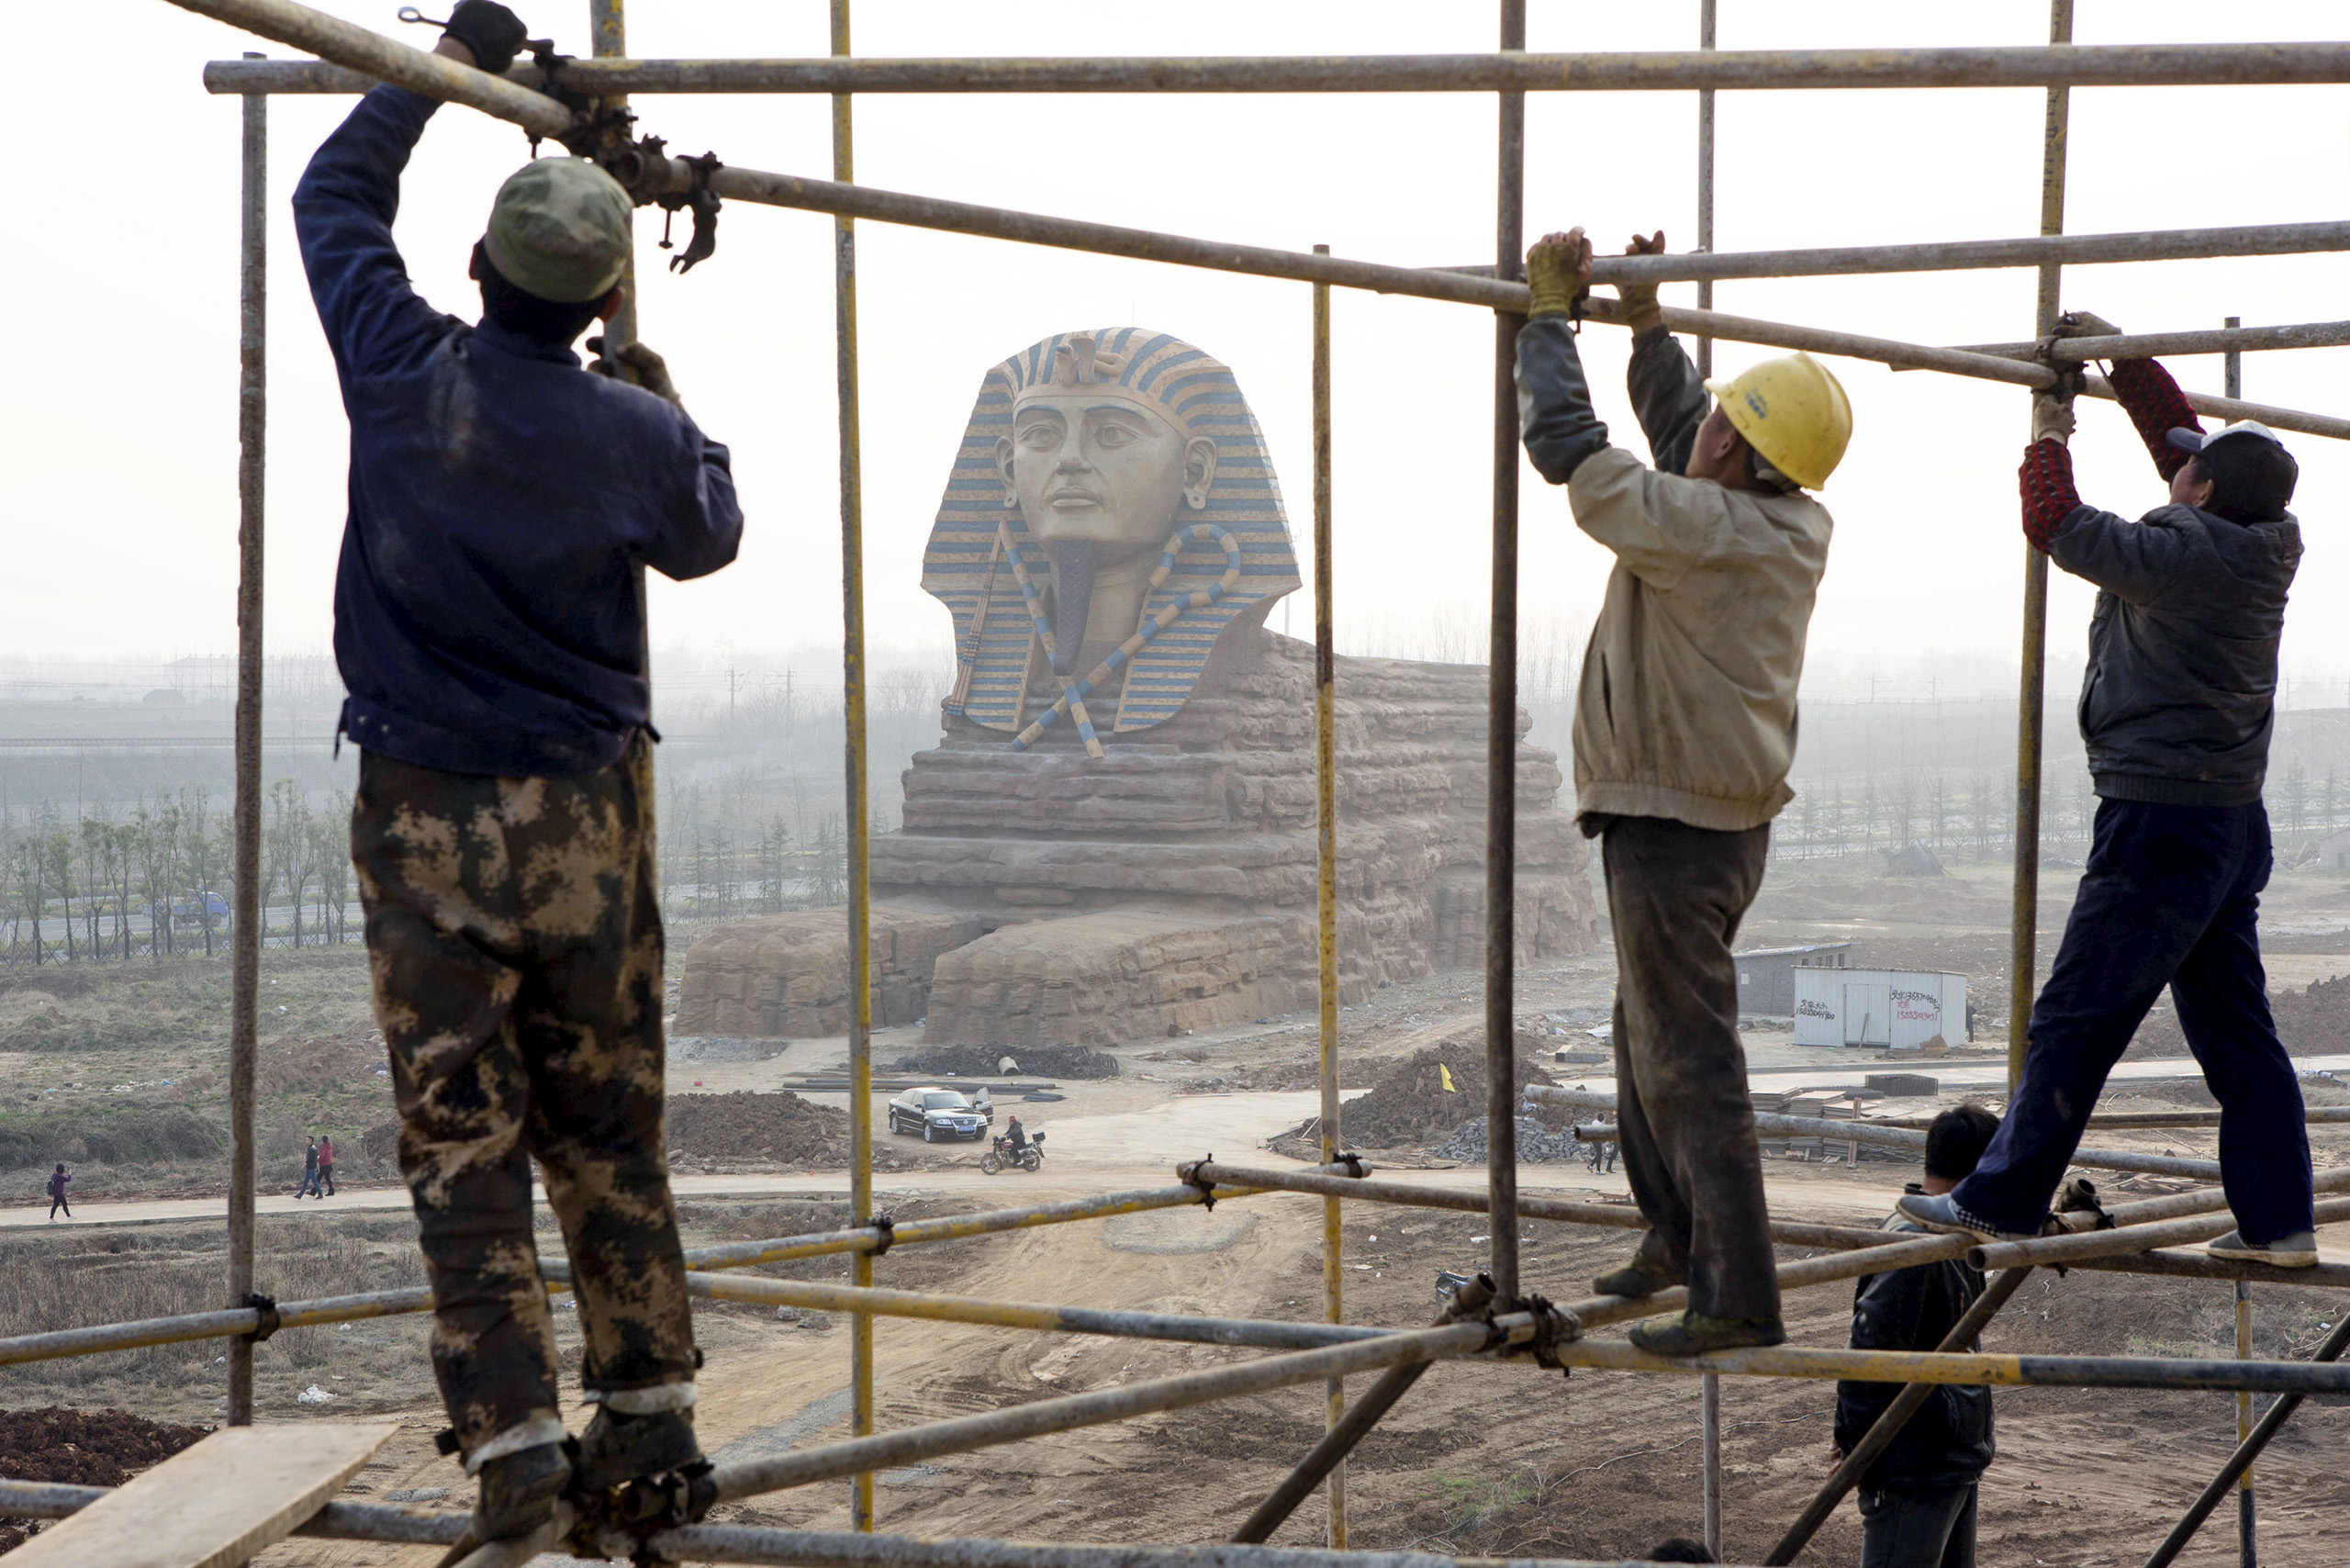 Laborers work on scaffolding near a full-scale replica of the Sphinx at an unfinished movie and animation theme park in Chuzhou, Anhui province.